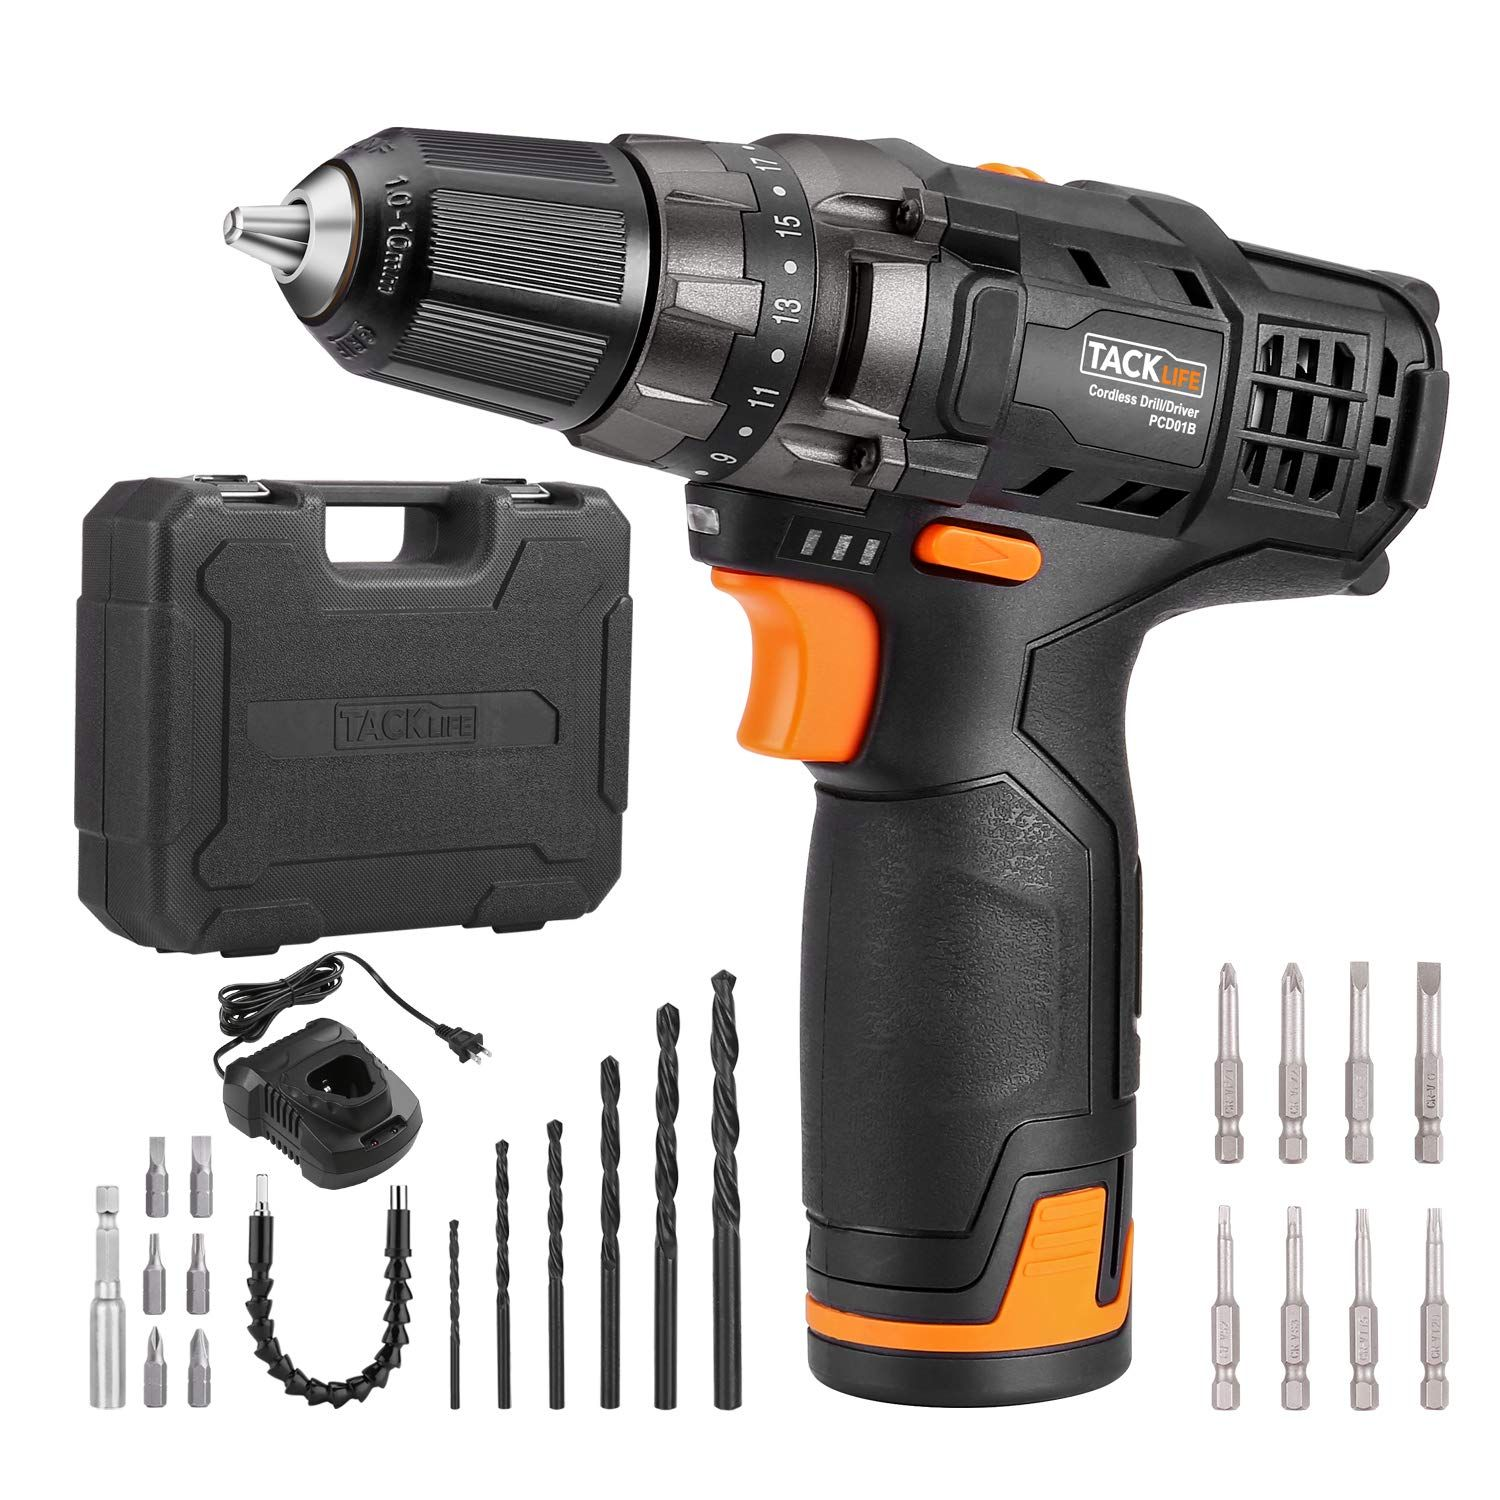 Tacklife 12v Cordless Drill Driver 3 8 Metal Chuck 2 Speeds Compact Drill Set With 13pcs Accessories 2000mah Lithium Ba In 2020 Drill Set Compact Drill Cordless Drill